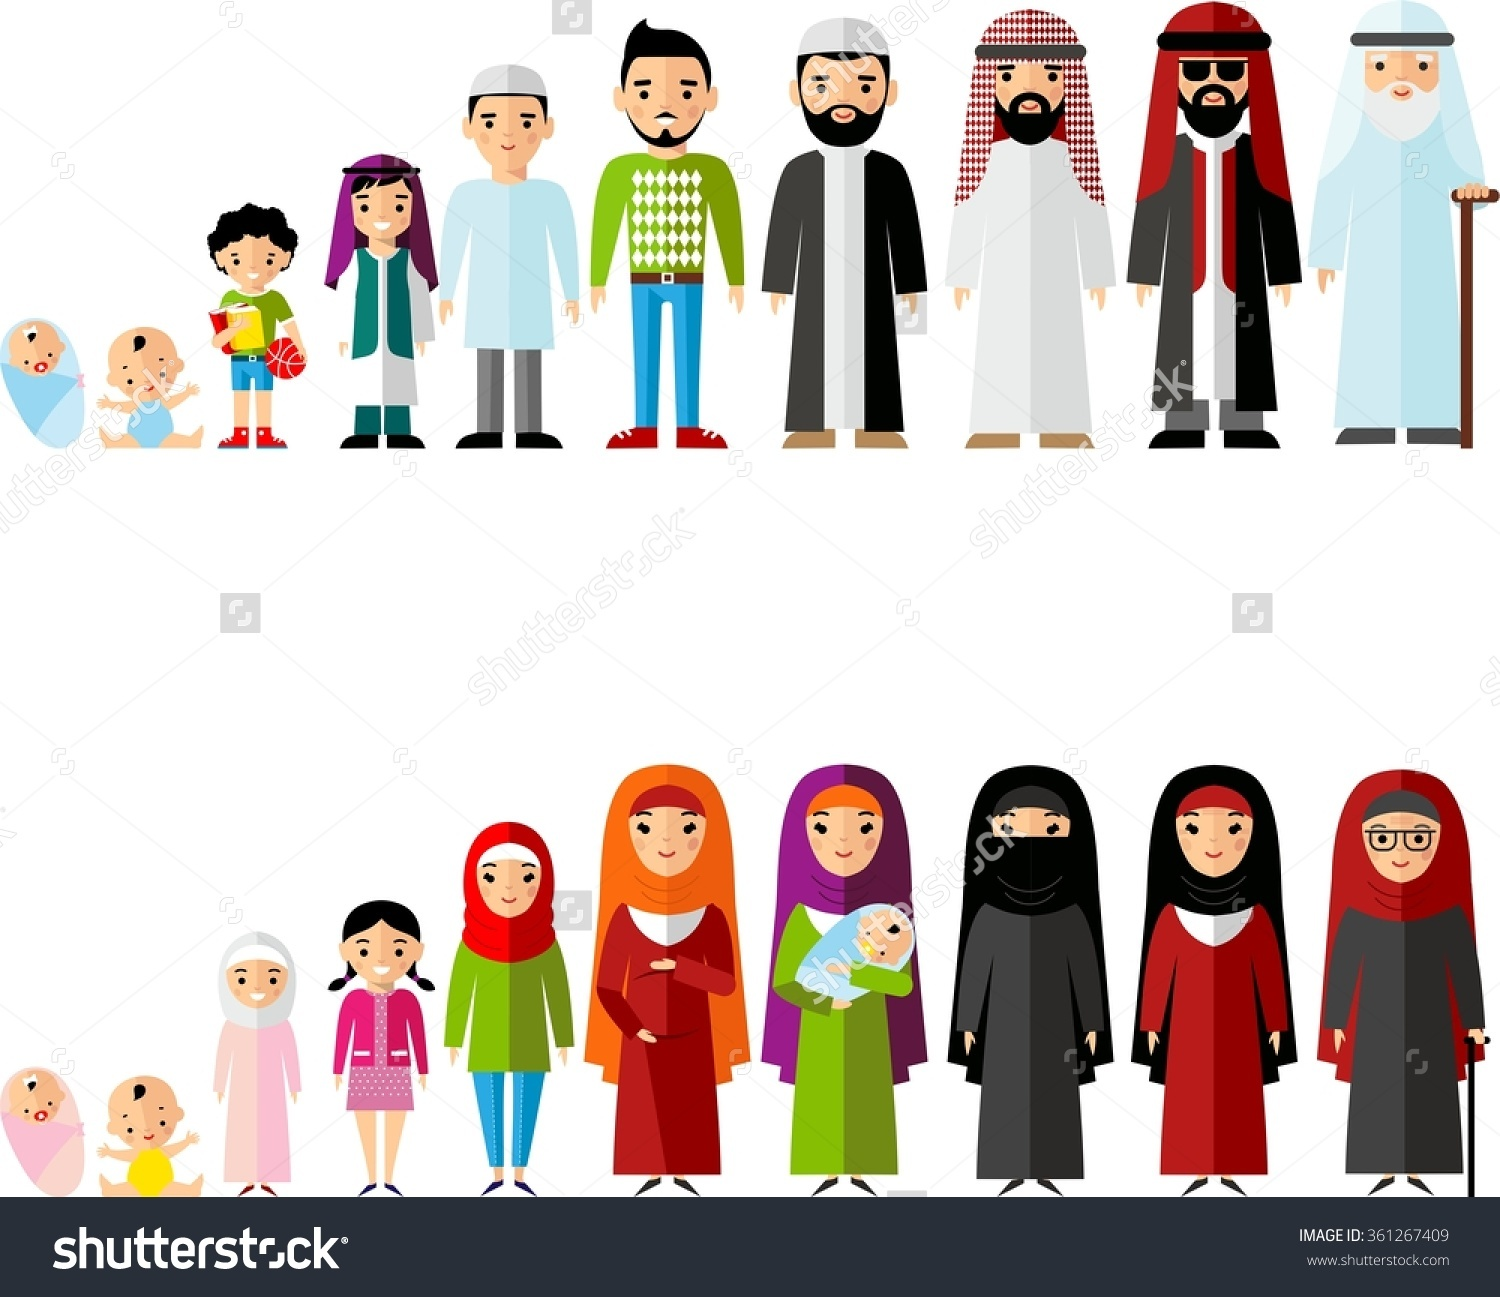 Arabic family photo clipart jpg royalty free library All Age Group Arab Family Generations Stock Vector 361267409 ... jpg royalty free library